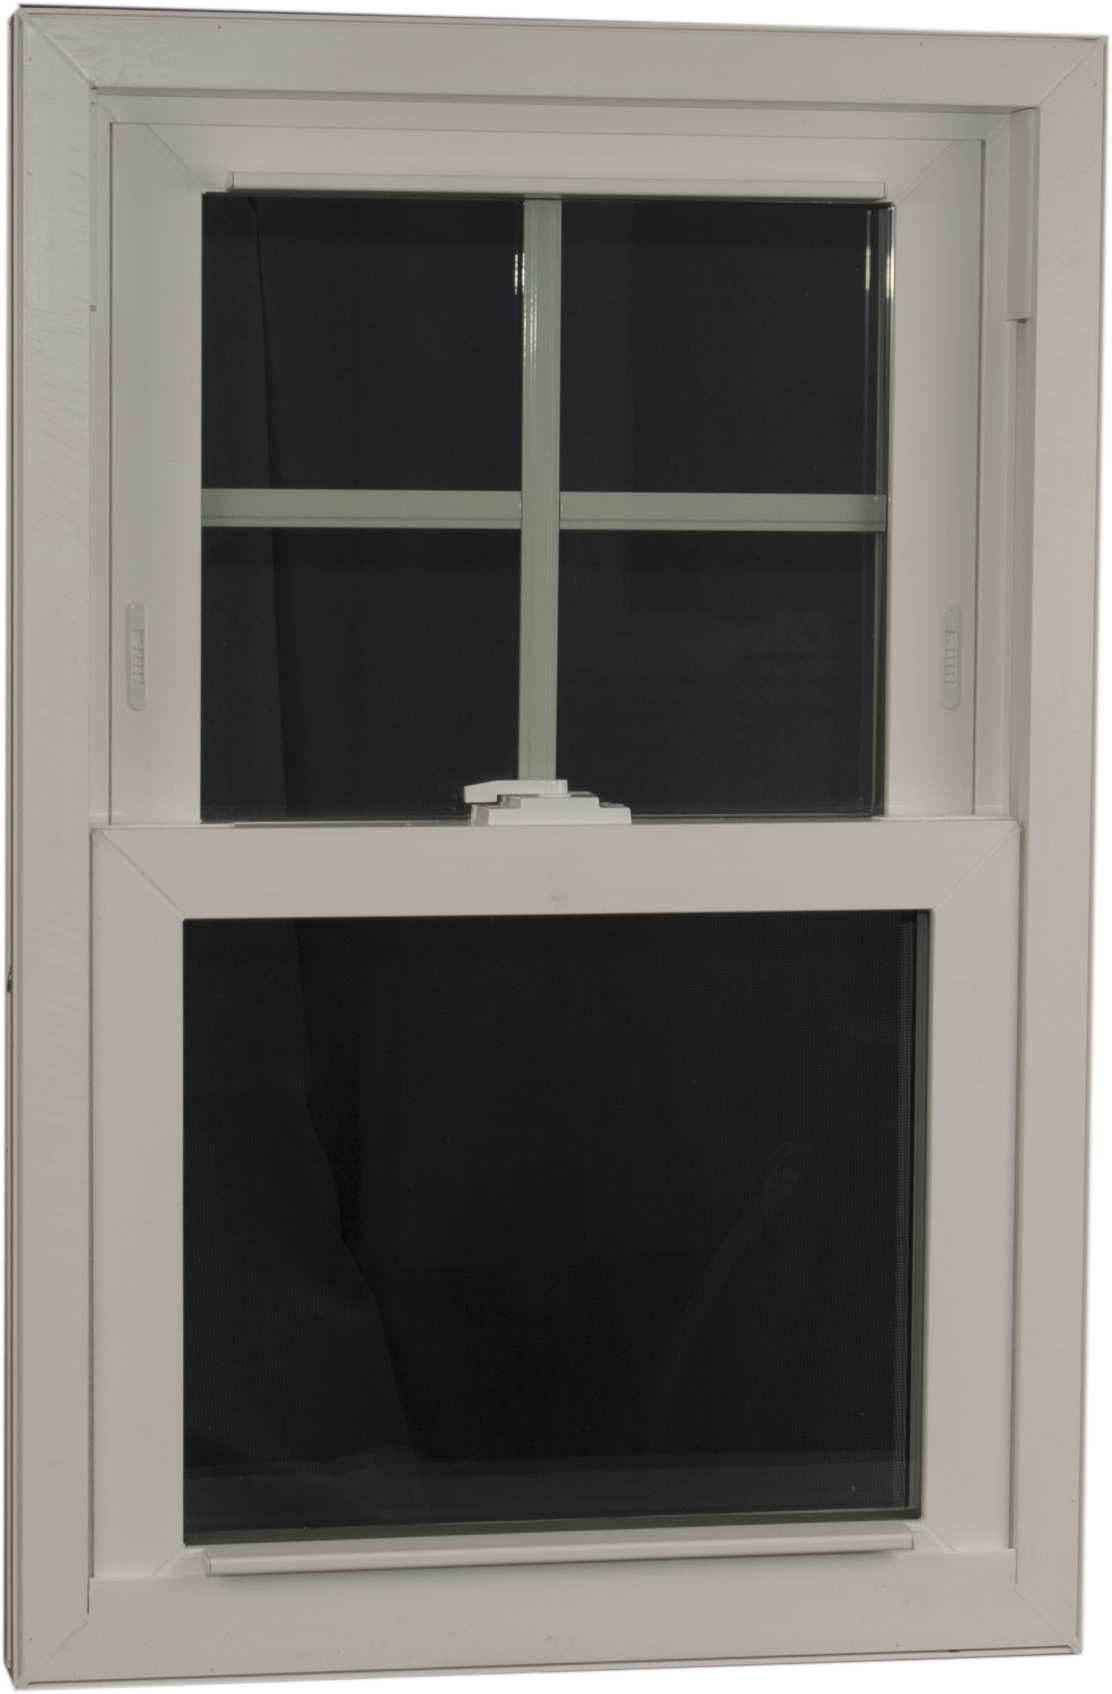 Vinyl double hung windows bing images for Double hung window